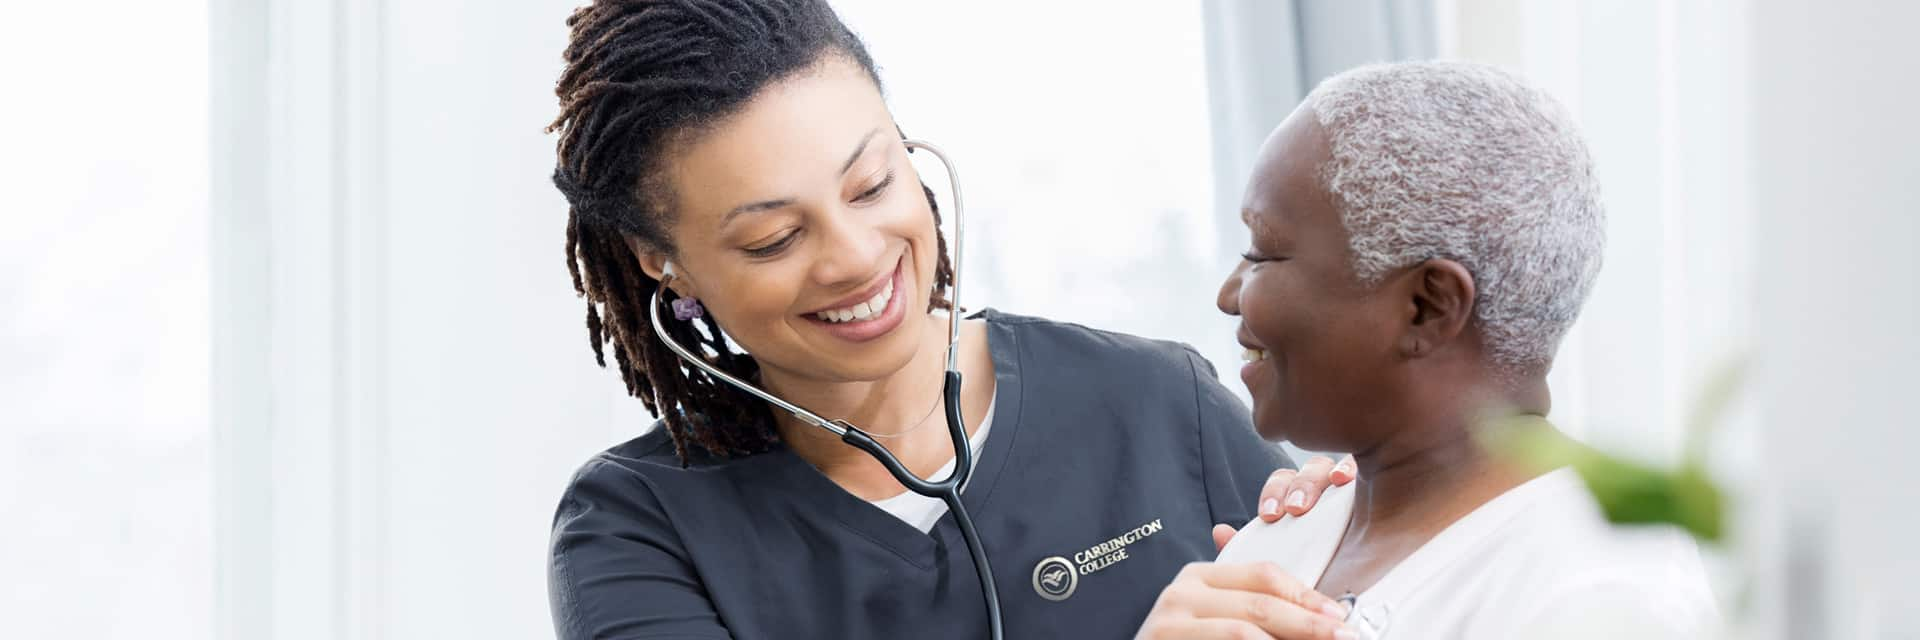 respiratory therapist jobs are in high demand